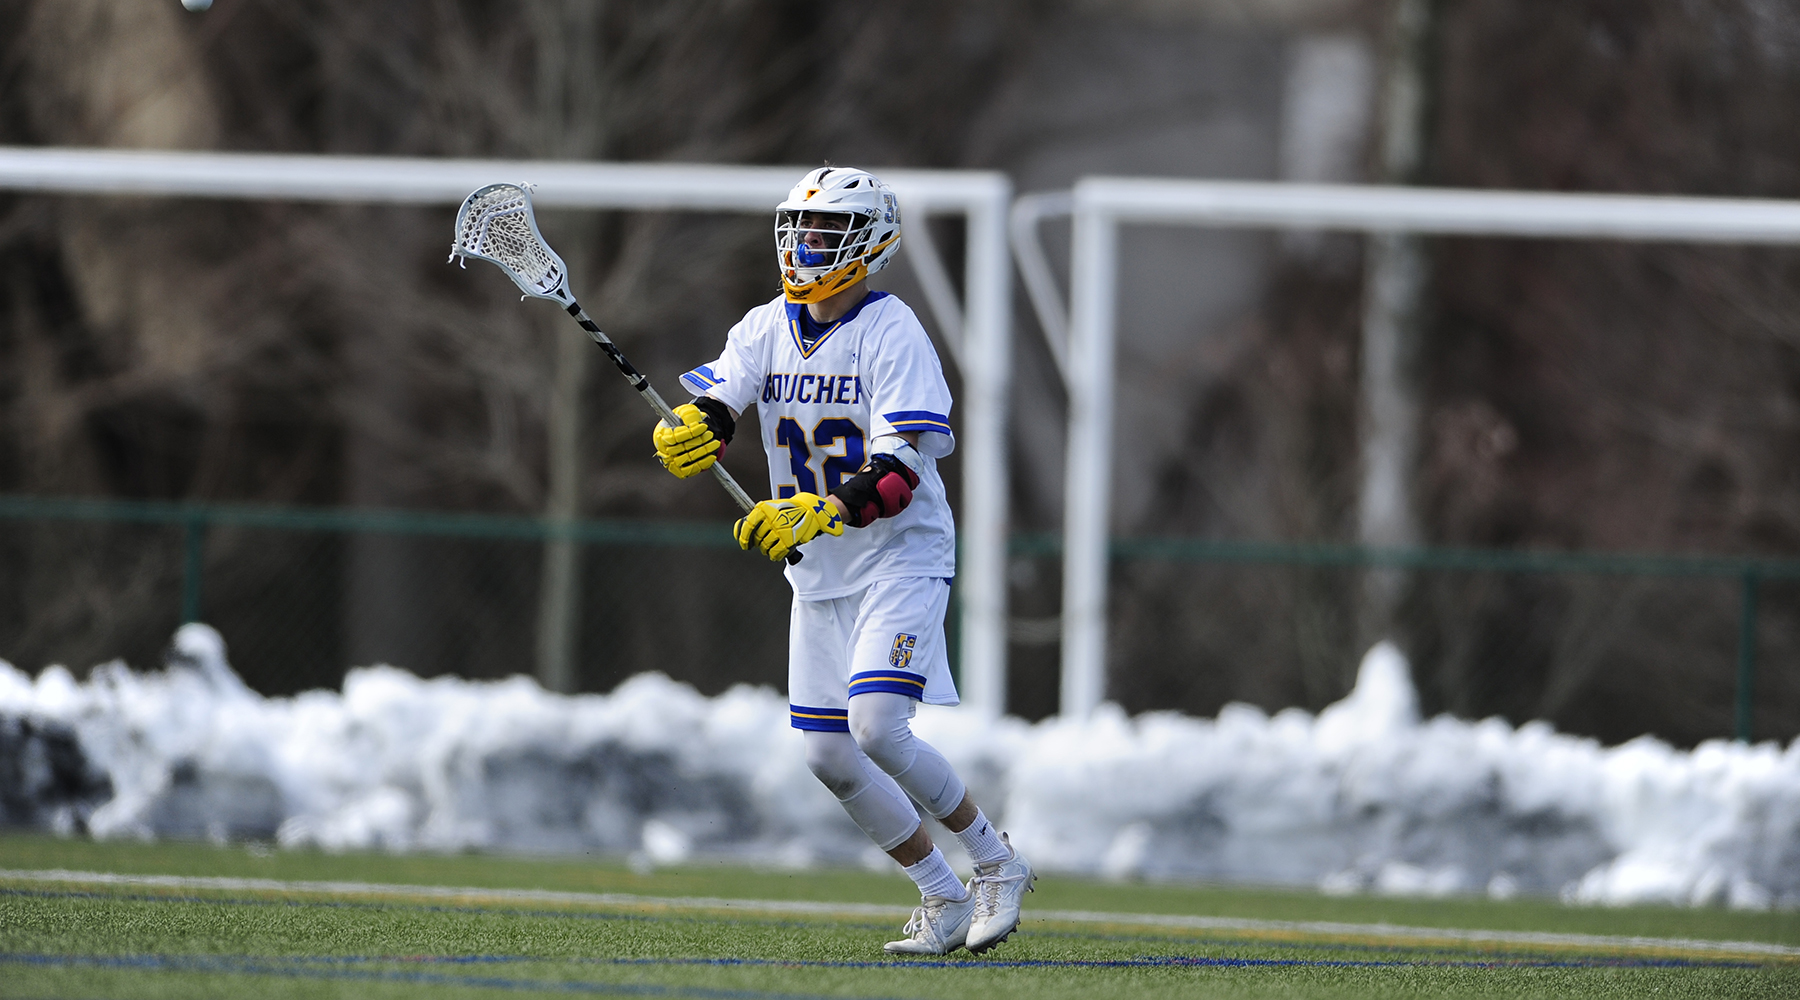 Men's Lacrosse's Woodson Nabs Landmark Conference Offensive Athlete of the Week Honors